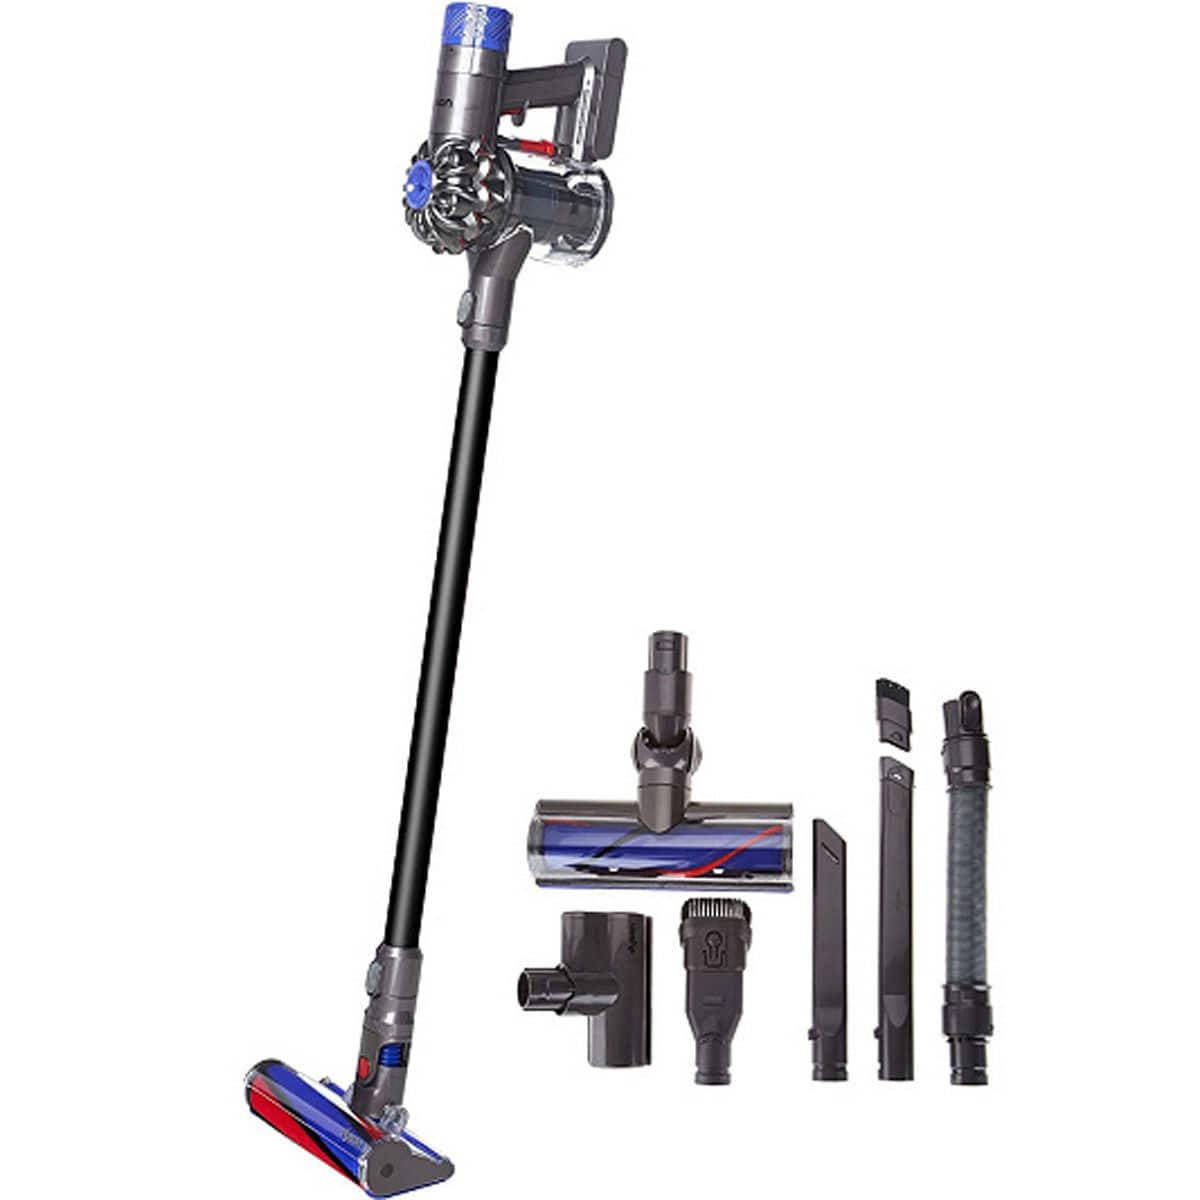 Dyson V6 Absolute Pro -- Gray with Flexi Crevice Tool and Extension Hose $330